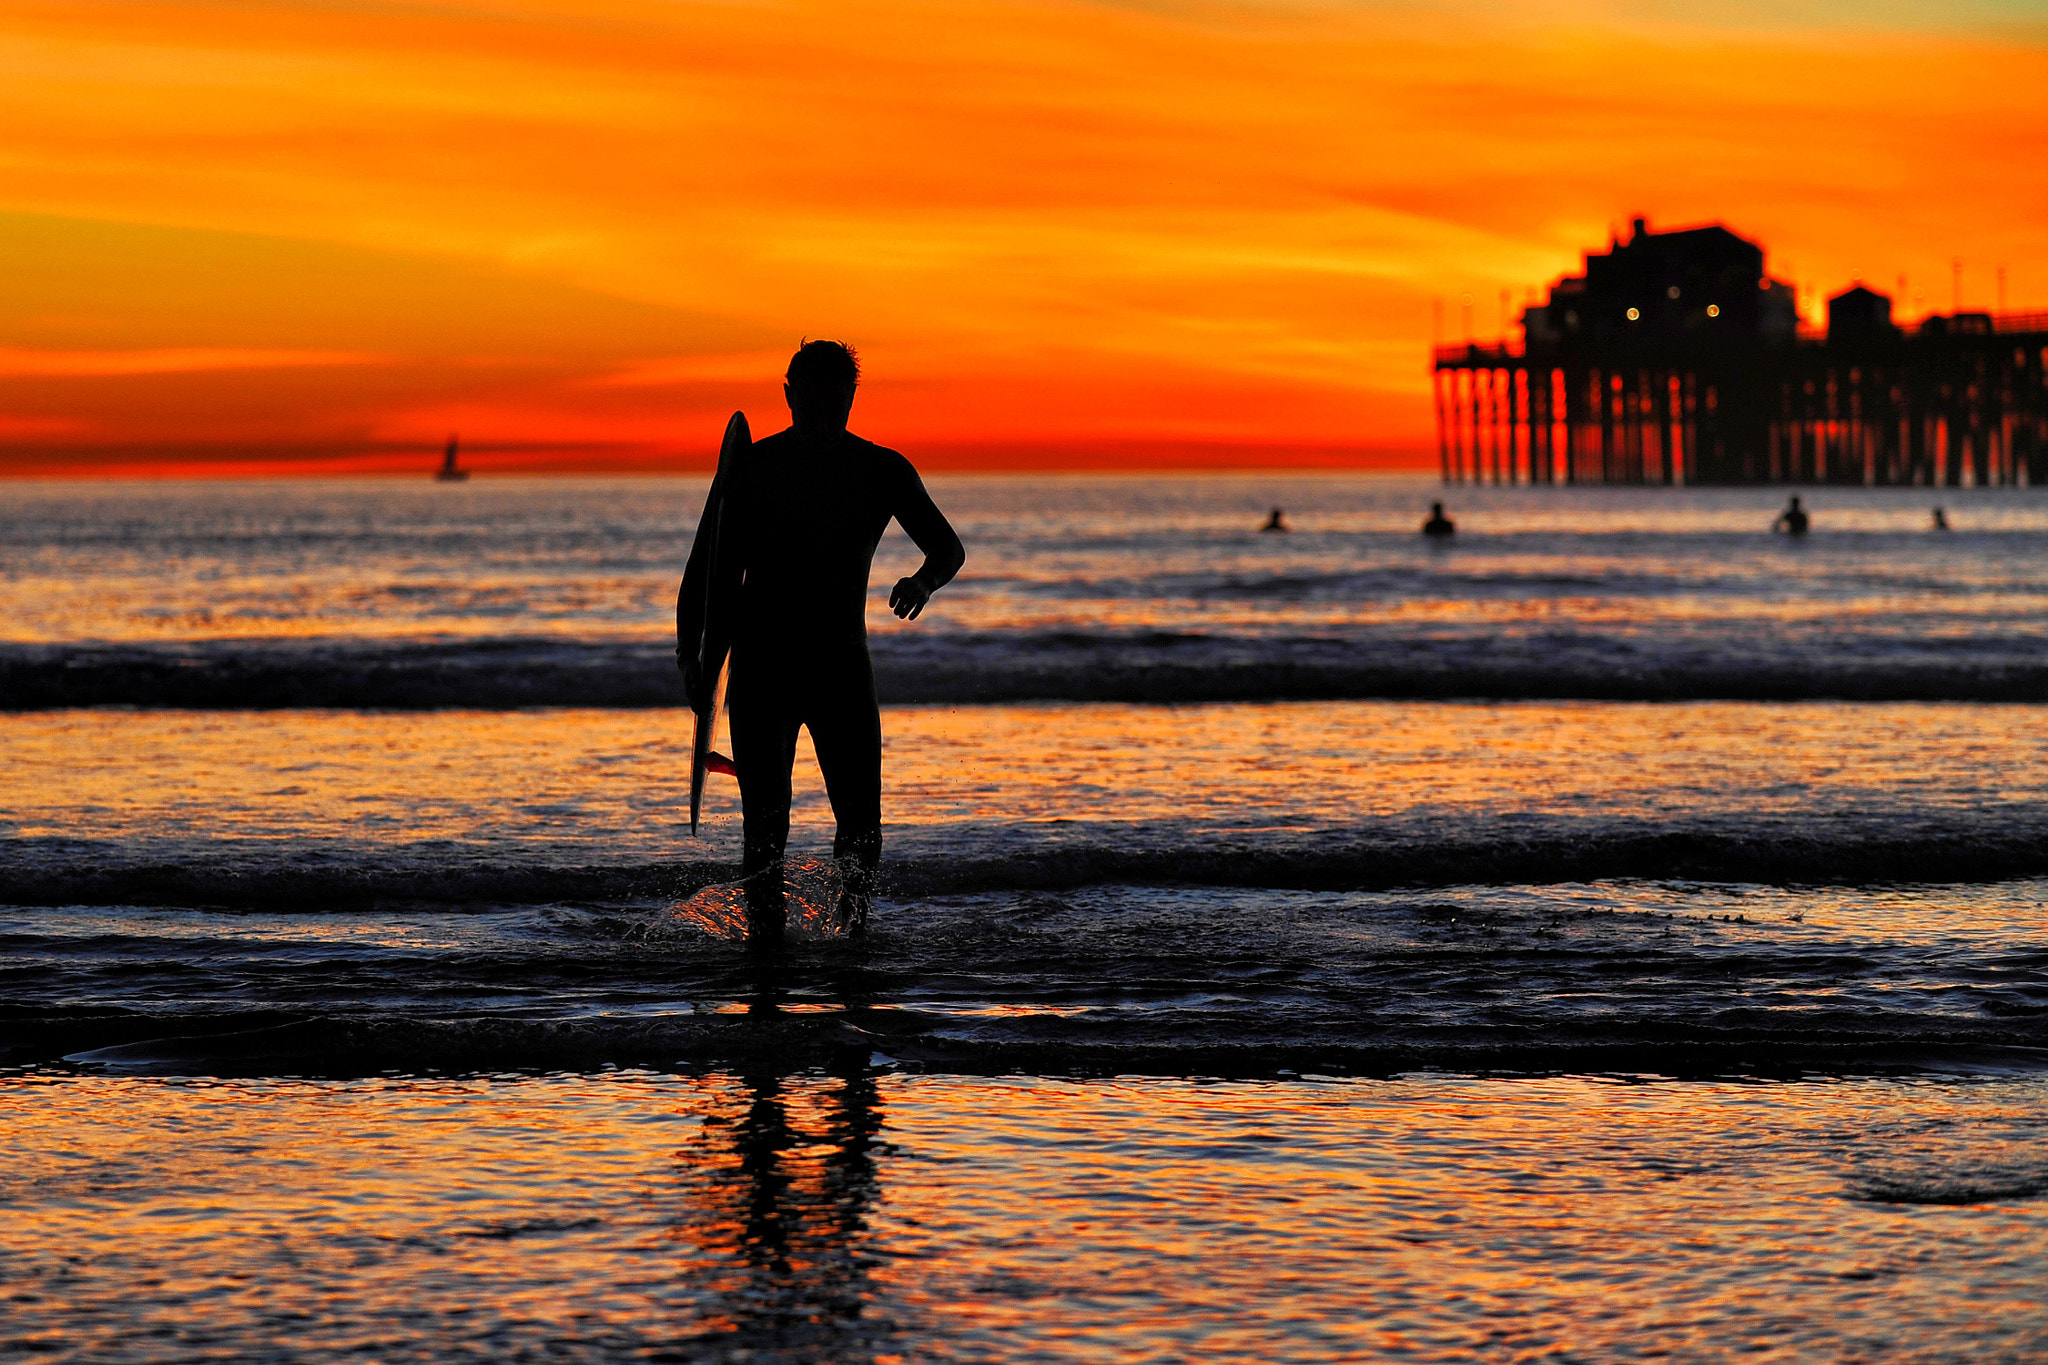 Photograph A Surfer at Sunset in Oceanside - January 18, 2013 by Rich Cruse on 500px